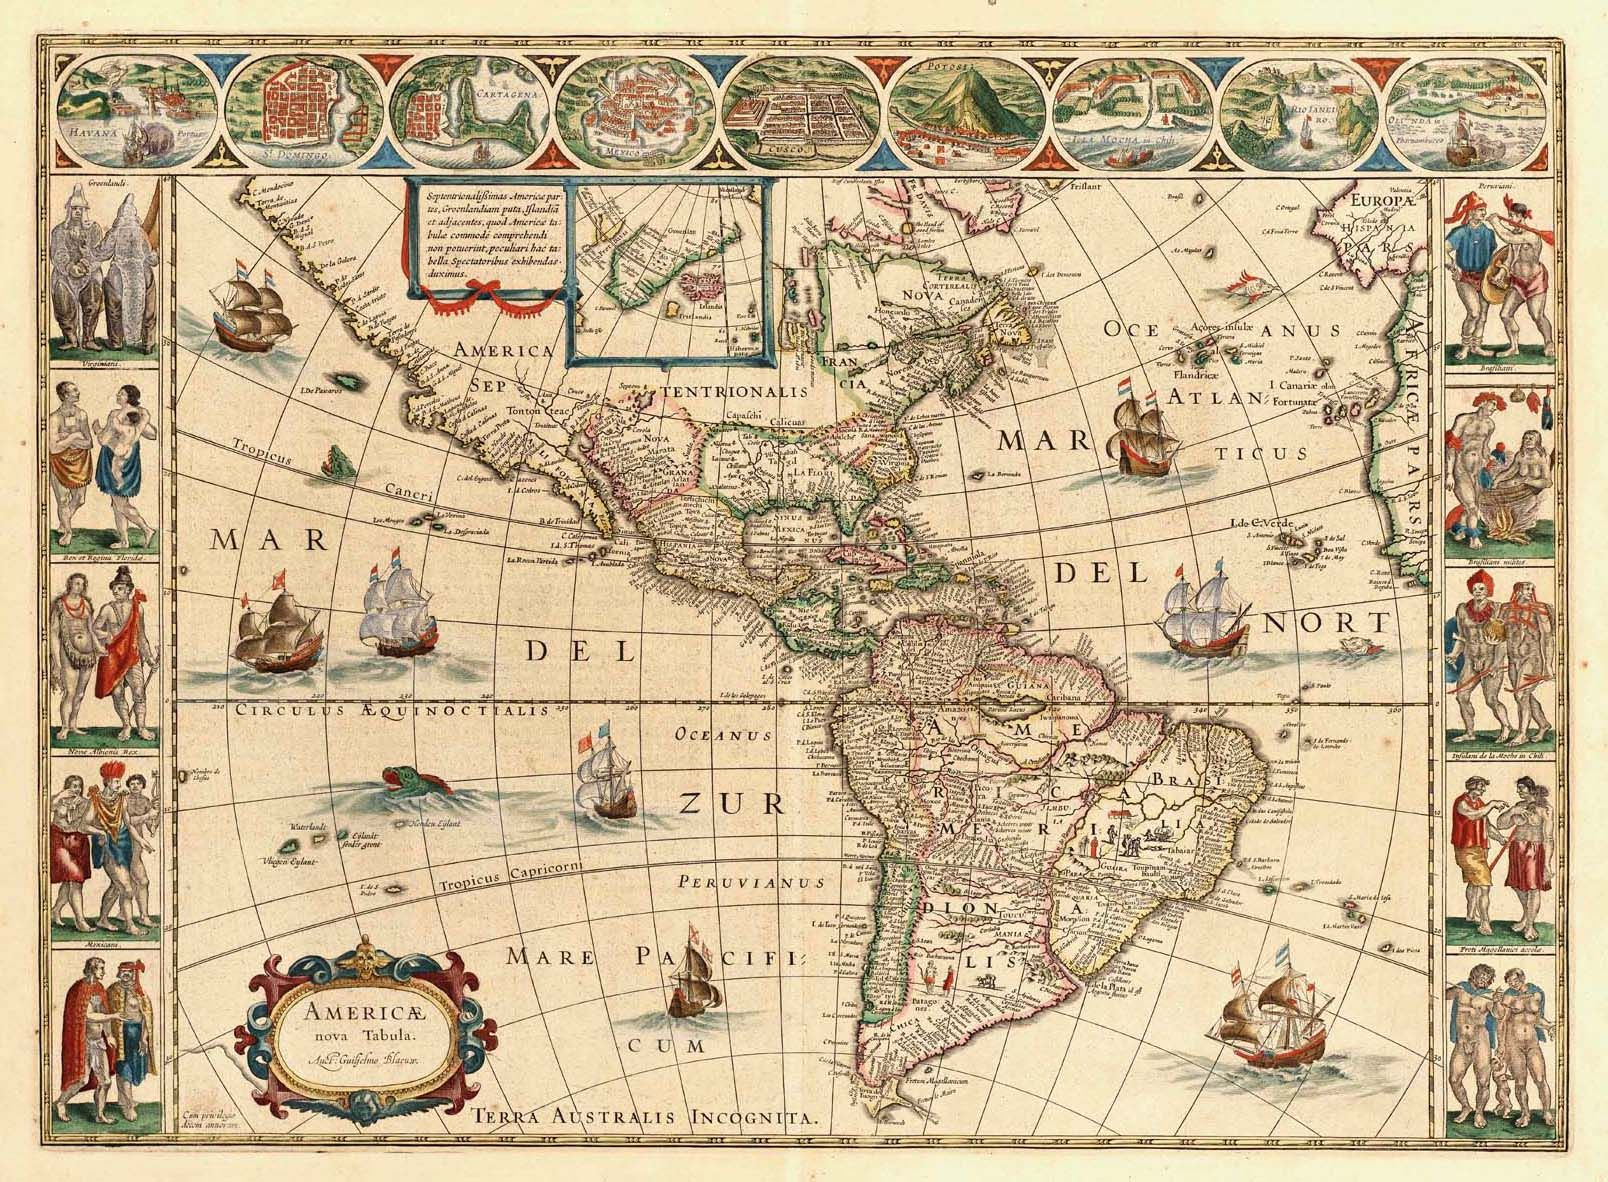 Bmc 18 p45g 16081182 writing ideas pinterest writing ideas americae nova tabula map of north and south america poster x print title americae nova tabula map of north and south america gumiabroncs Images